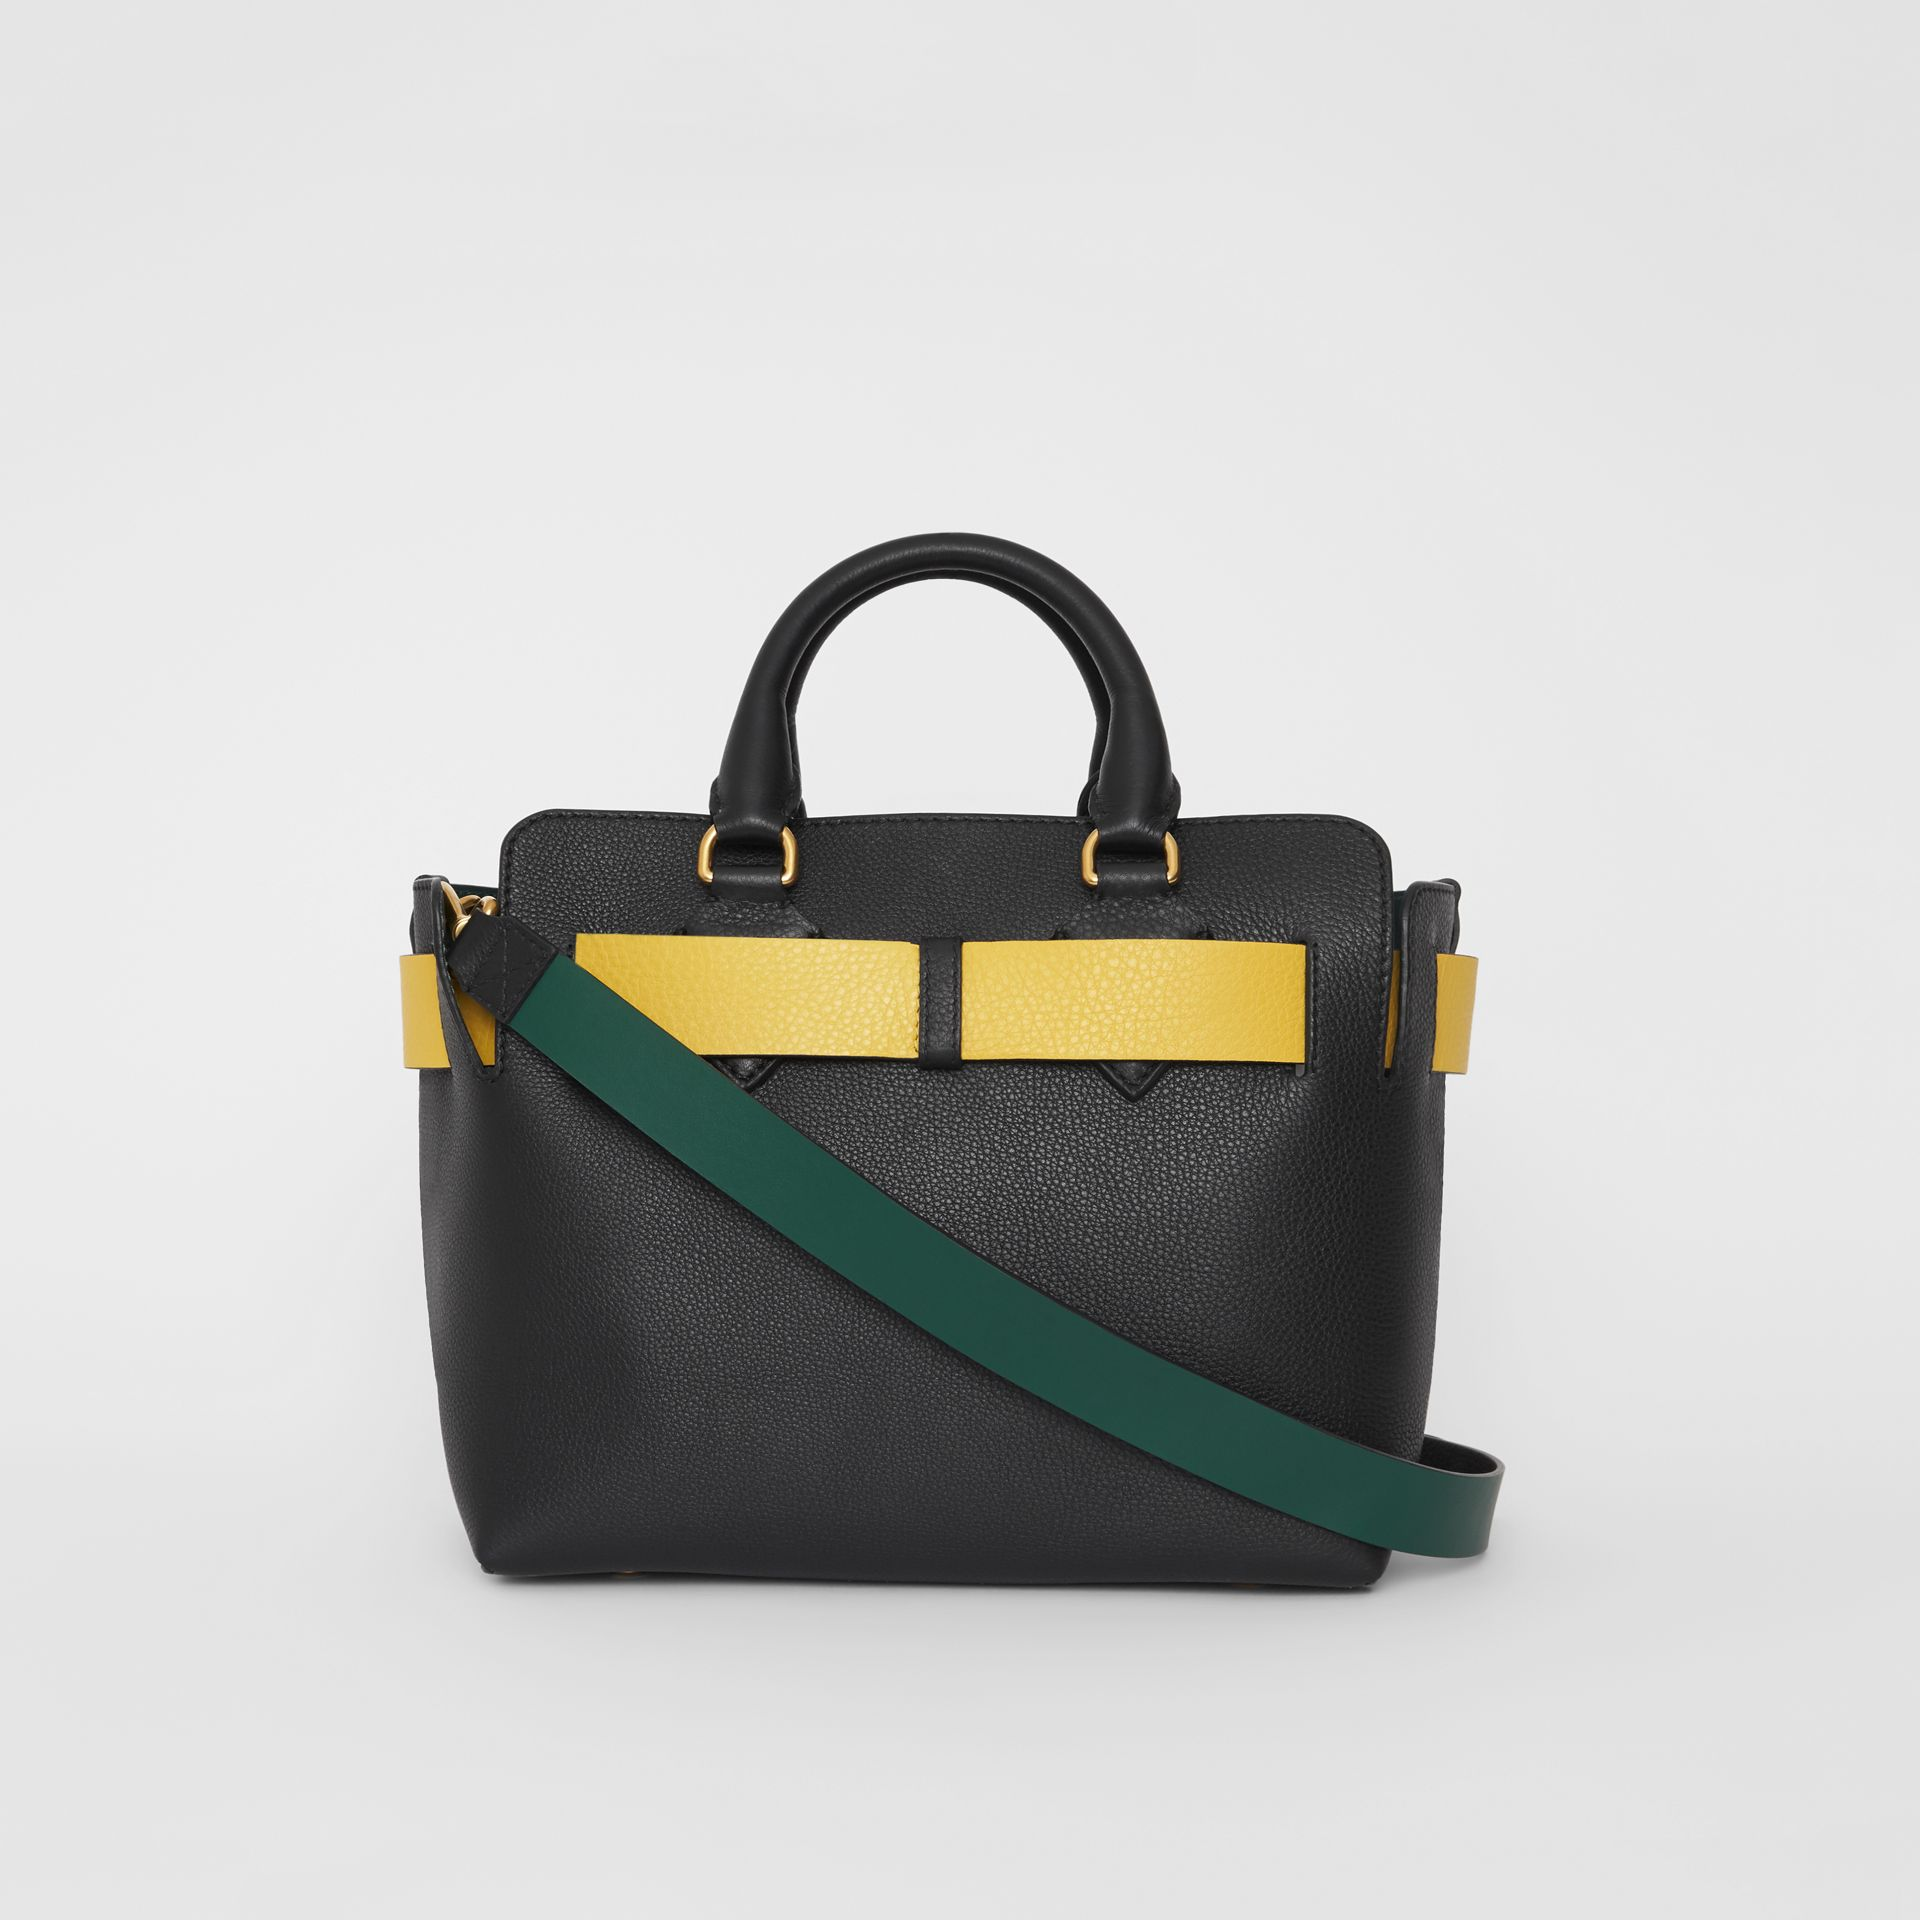 Petit sac The Belt en cuir (Noir/jaune) - Femme | Burberry Canada - photo de la galerie 7